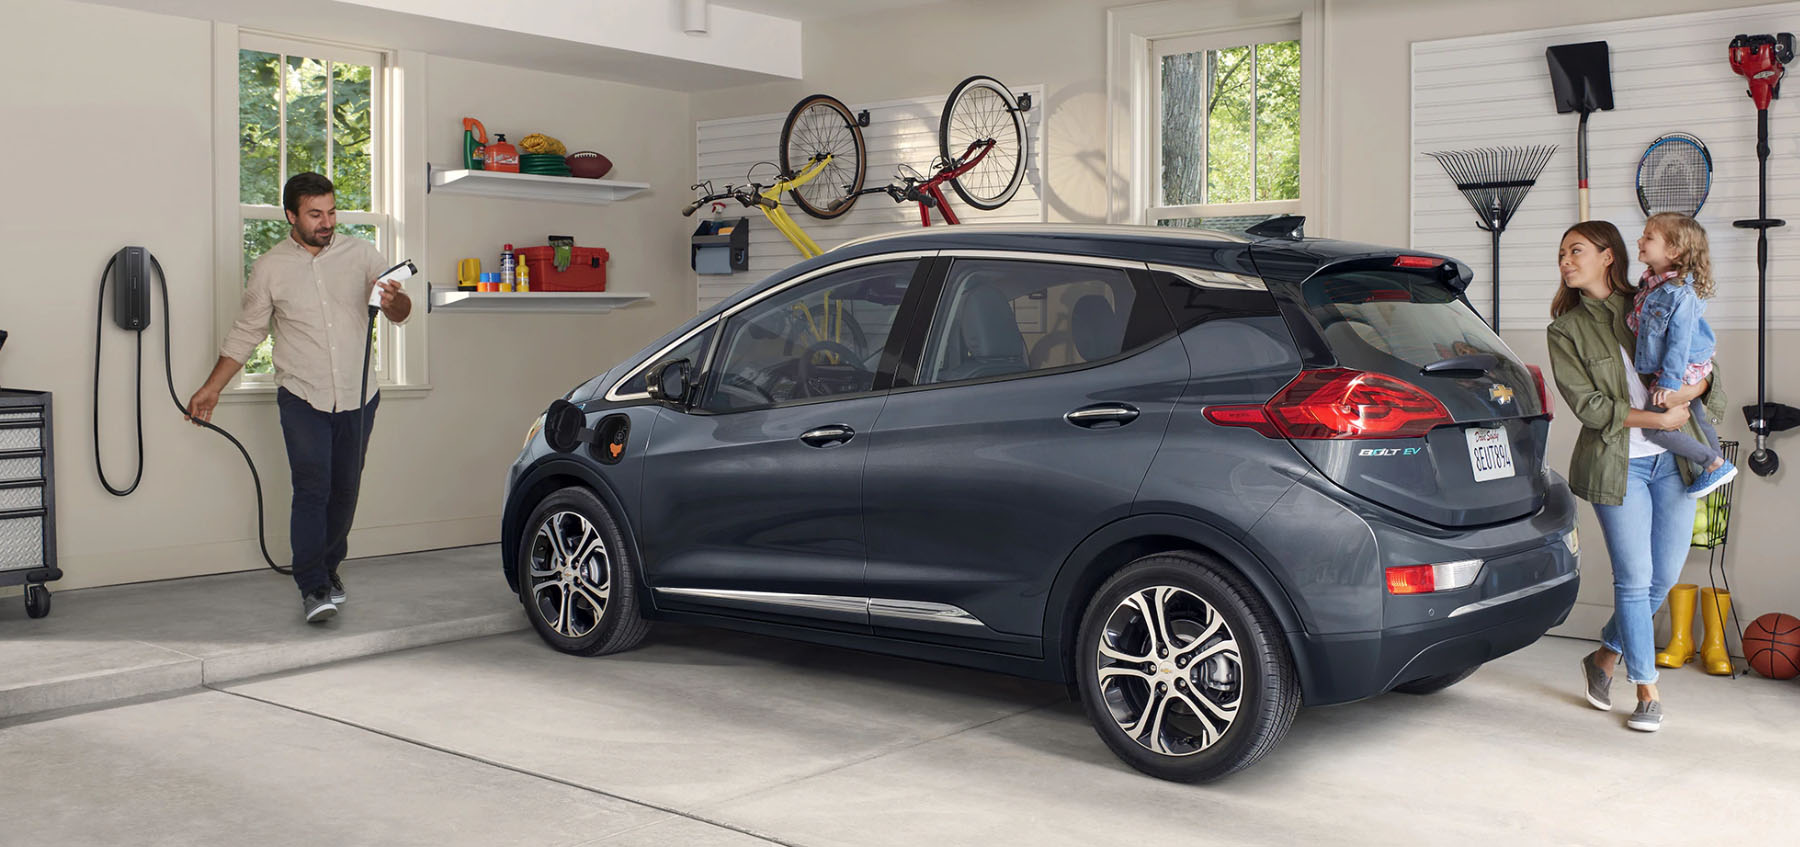 2020 Chevrolet Bolt EV Appearance Main Img